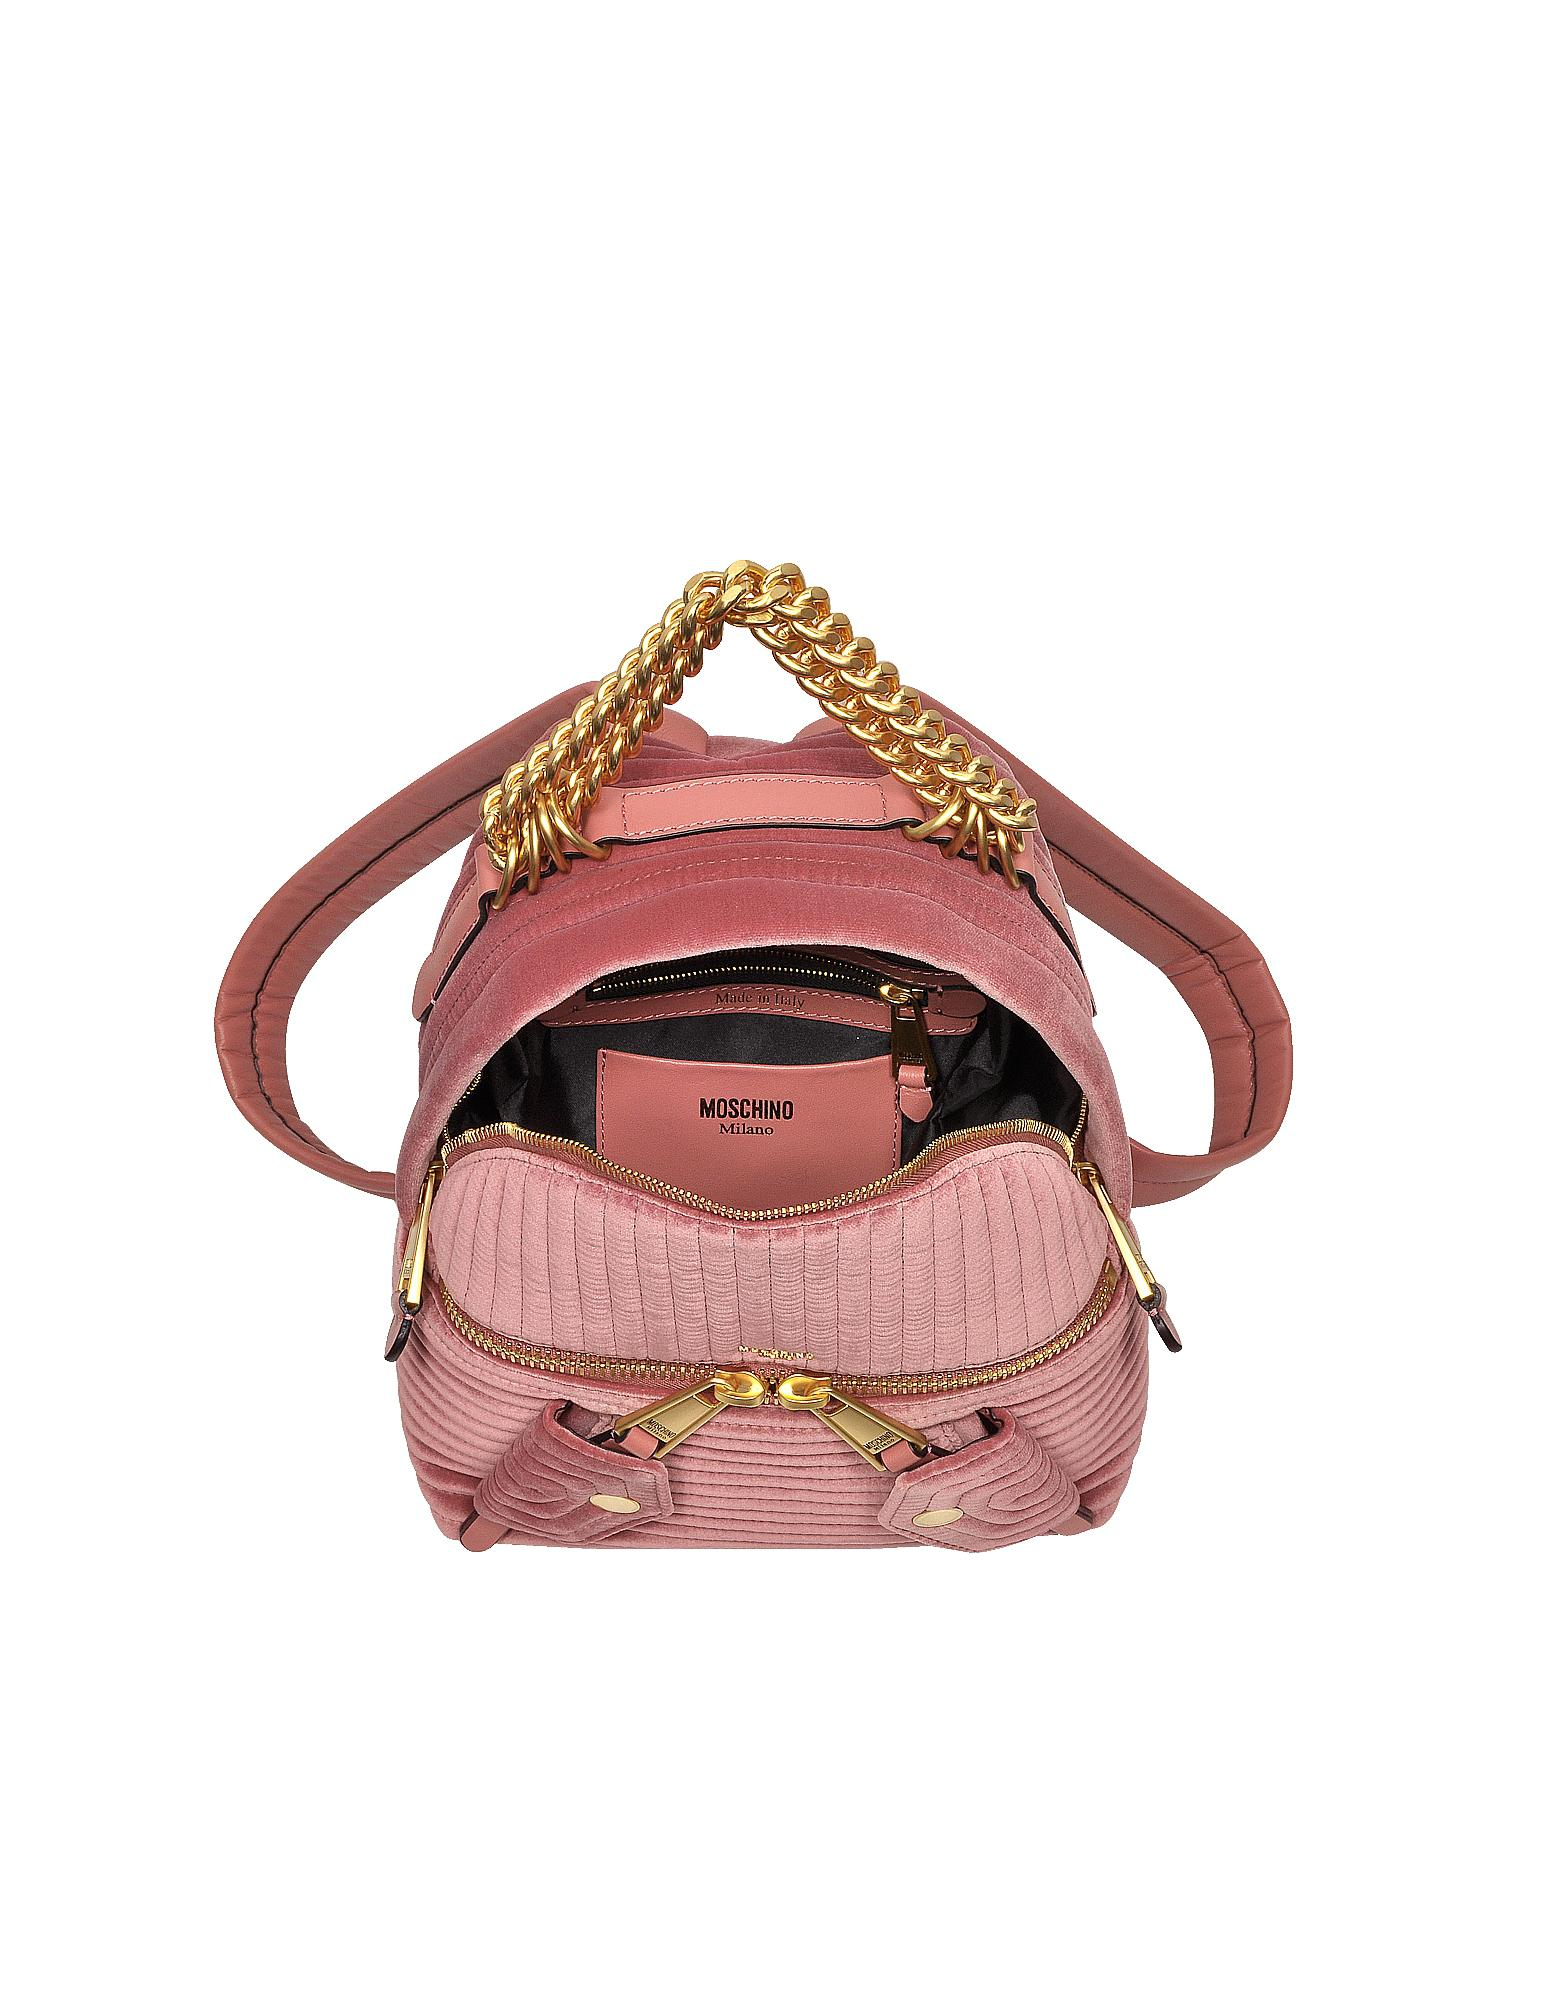 Moschino Pink Quilted Velvet Backpack in Pink - Lyst e491124ce2f9c